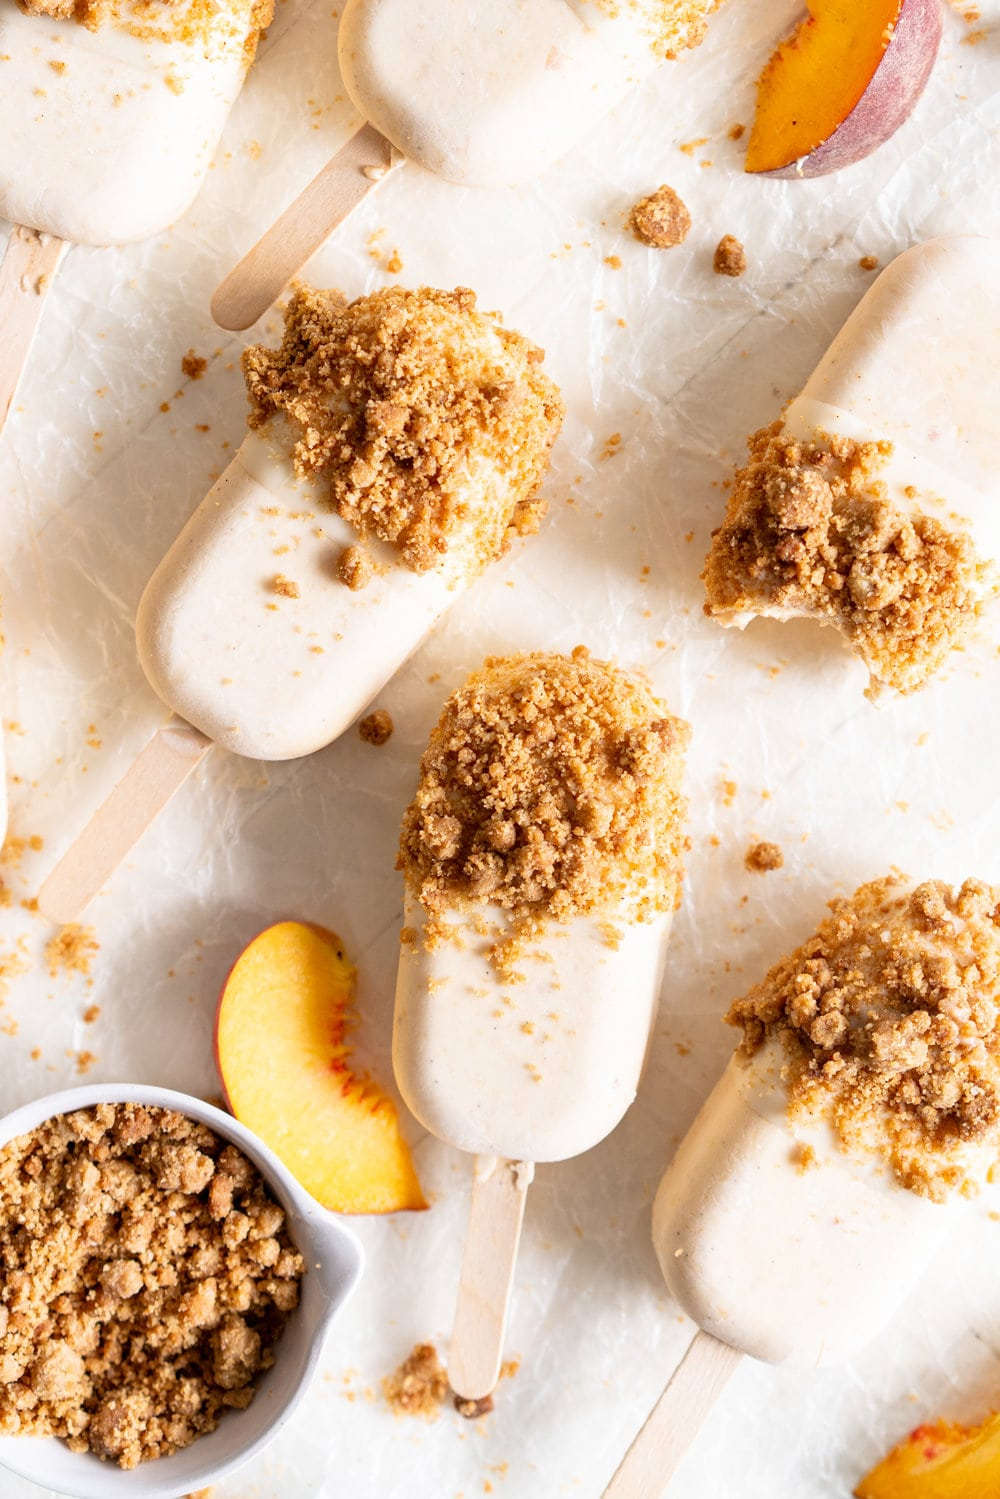 Roasted Peach and Quark Ice Cream Pops with white chocolate dip and brown butter streusel. These are the perfect summer treat - creamy quark, roasted peaches and toasty brown butter streusel.